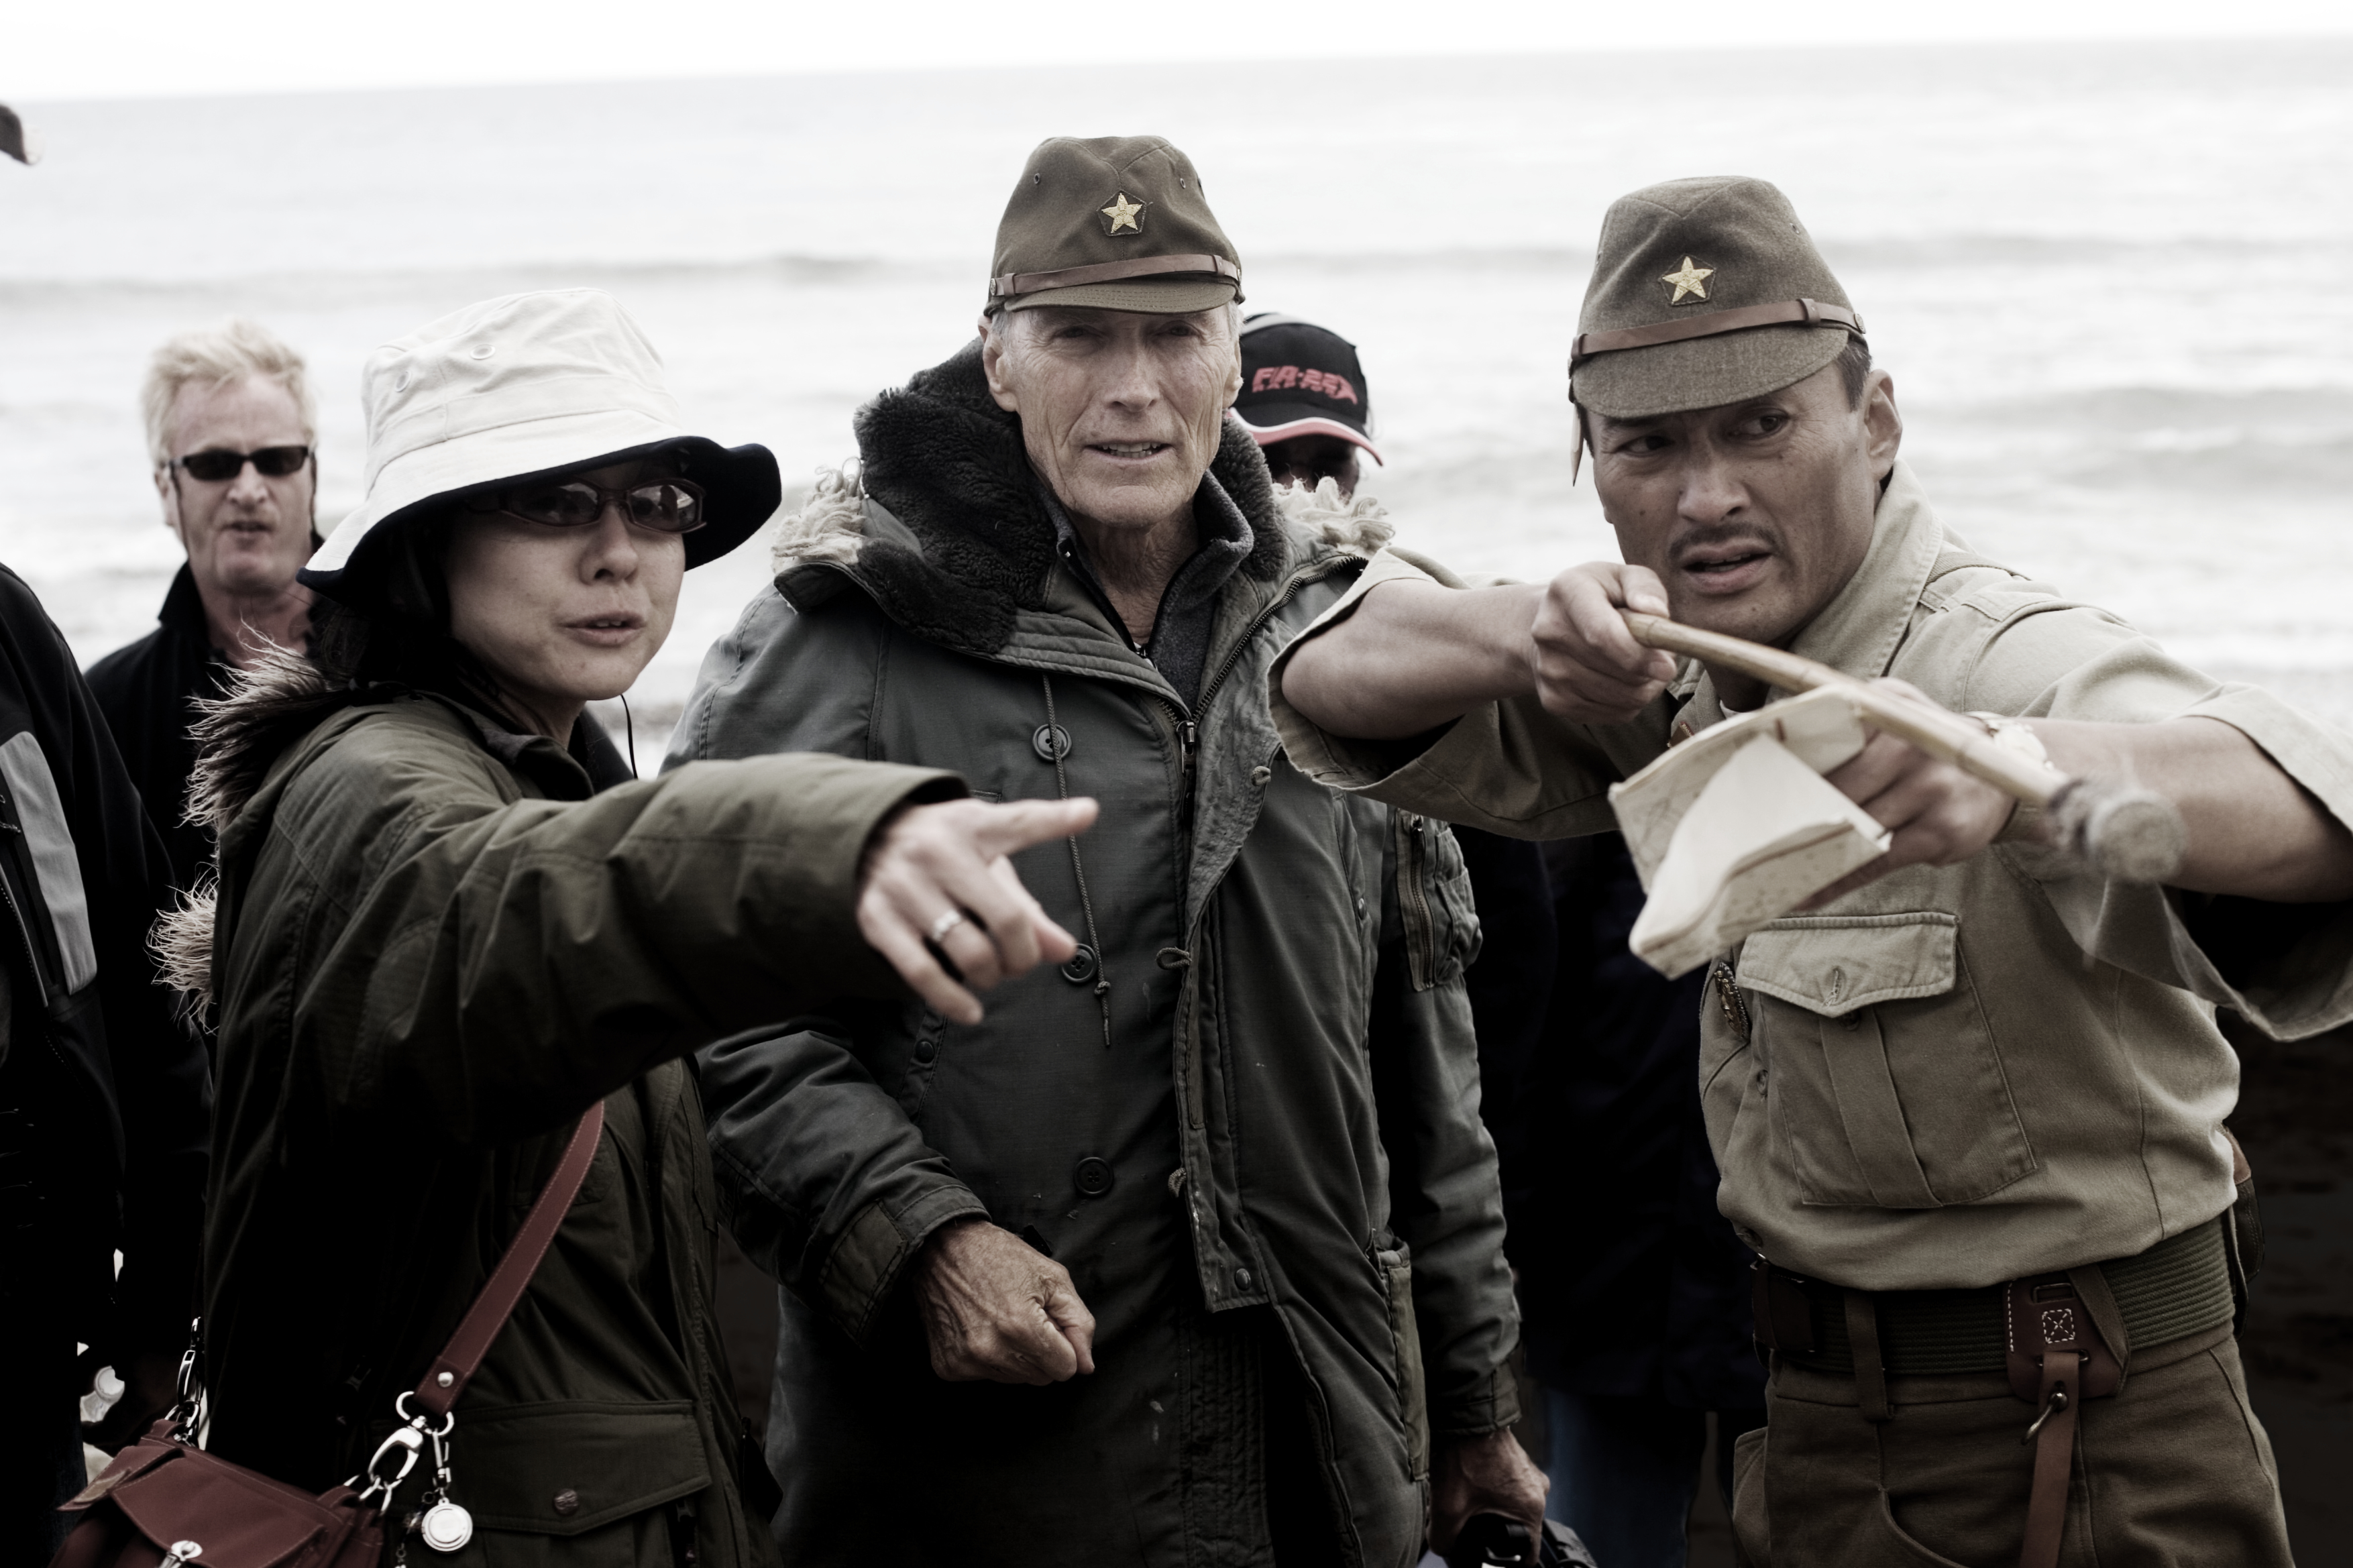 a critique of letters from iwo jima a film by clint eastwood Letters from iwo jima film, drama 0 add review  the bloody wresting of the tiny island of iwo jima from 21,000 japanese by an unprecedented  clint eastwood.